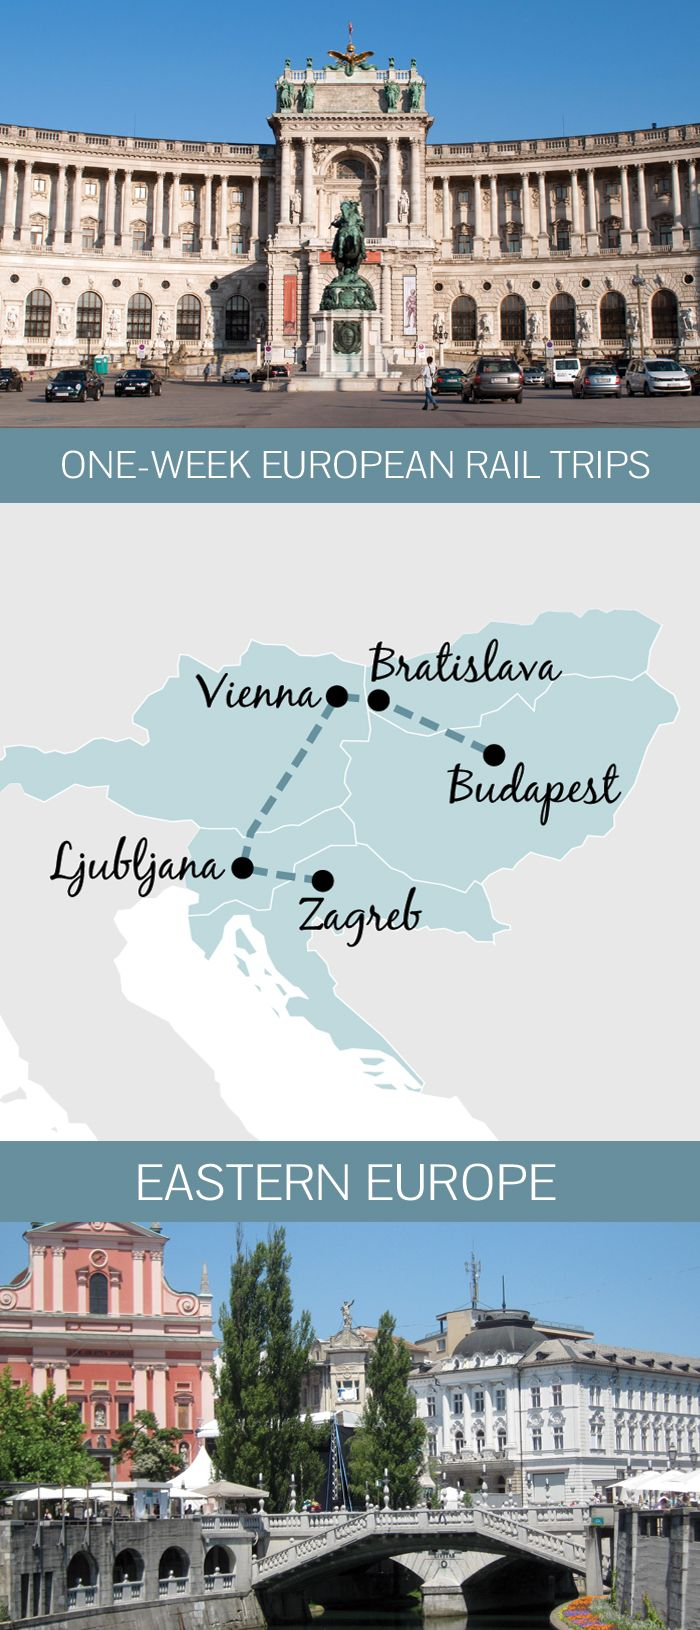 You don't need months to spare to see Europe by train – a one-week Eastern European rail itinerary from Budapest to Zagreb